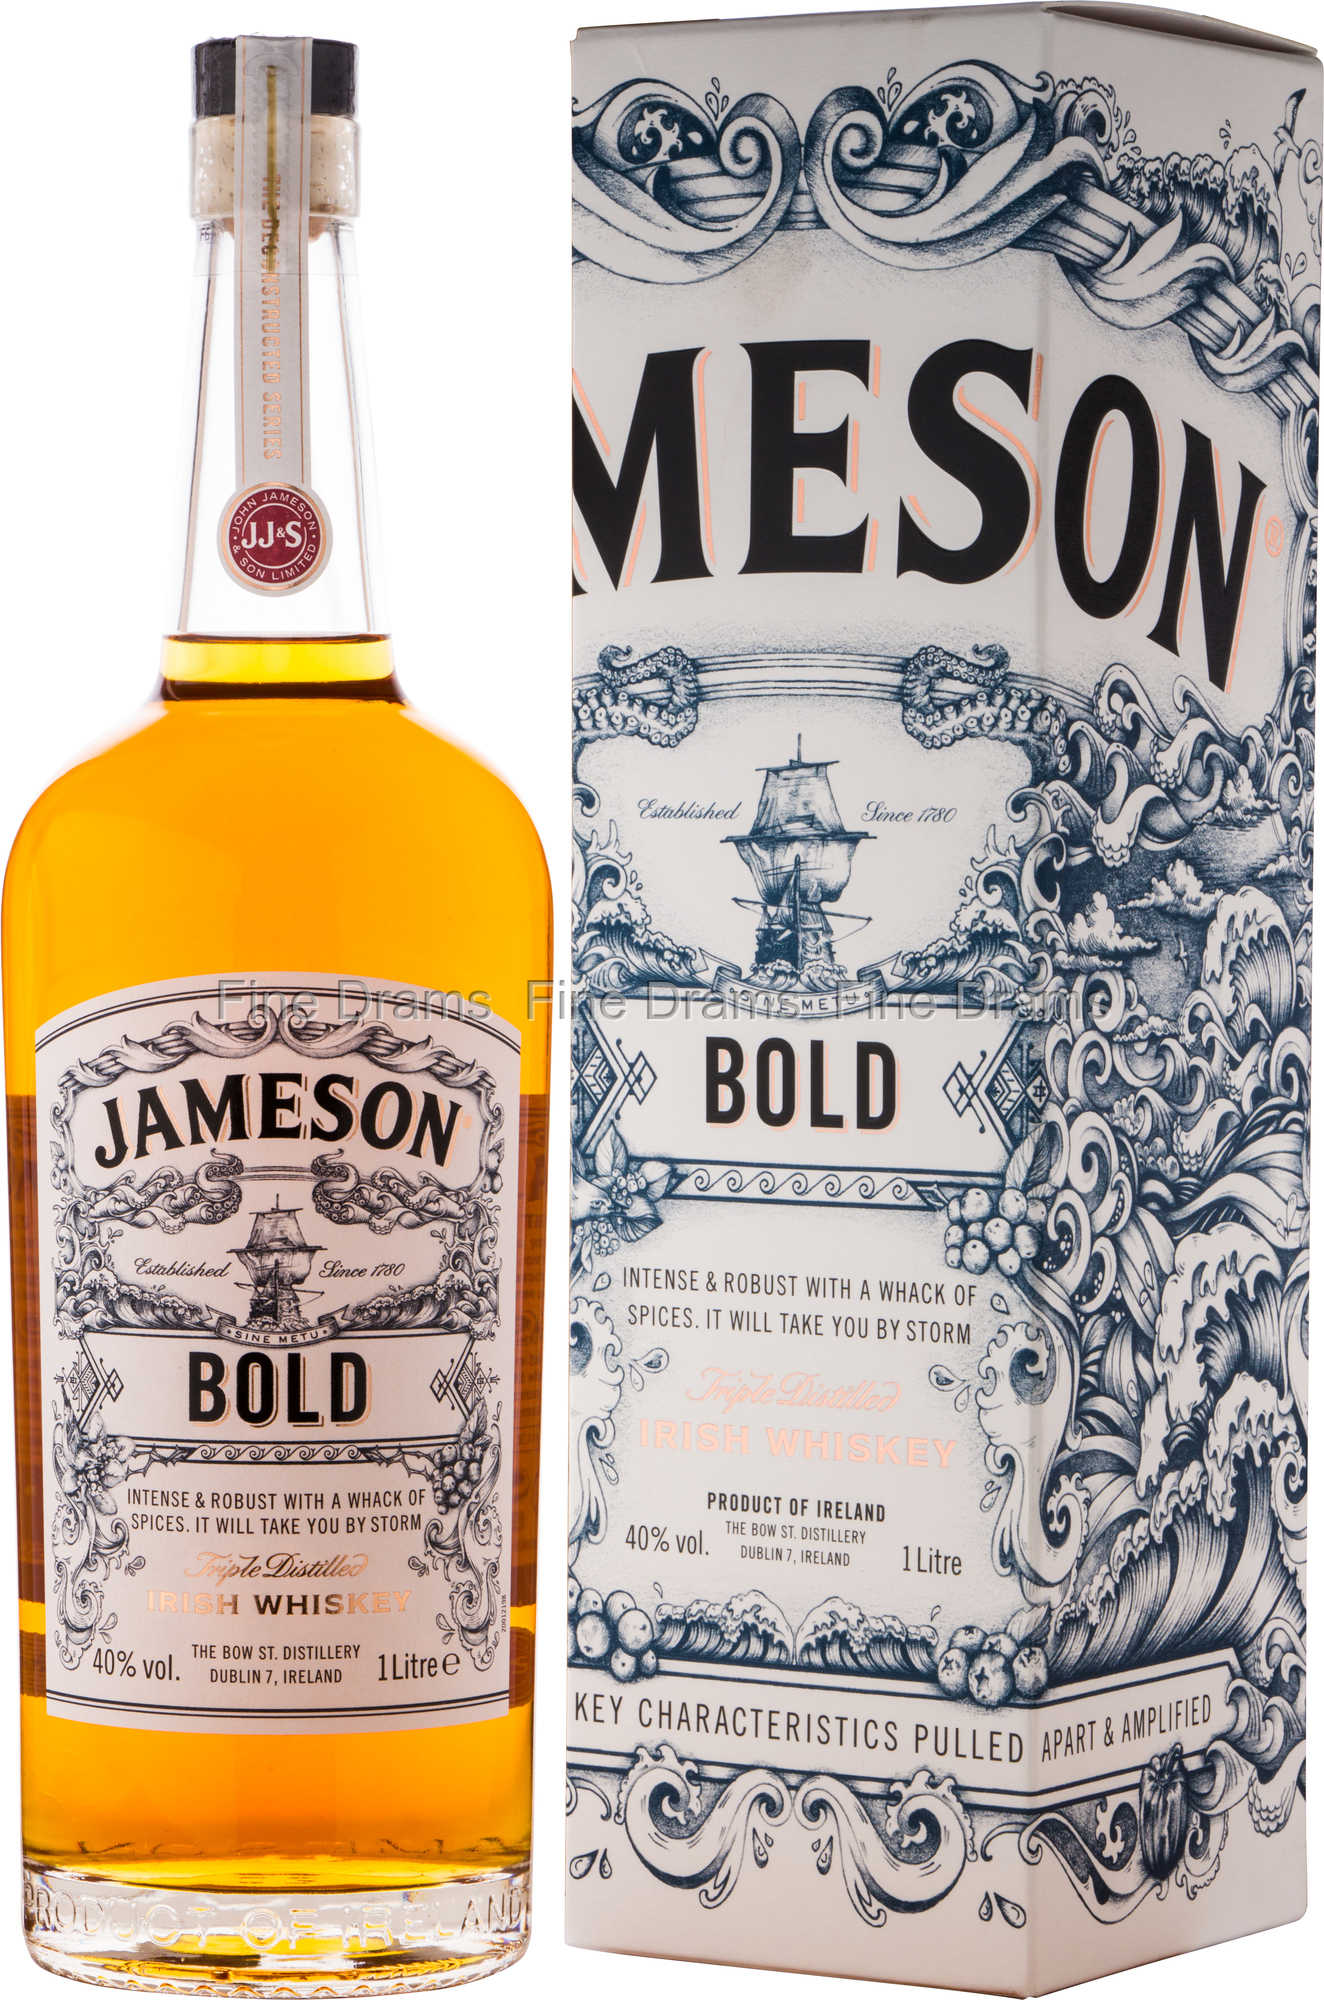 Jameson Deconstructed Series Bold Whisky 1 Liter